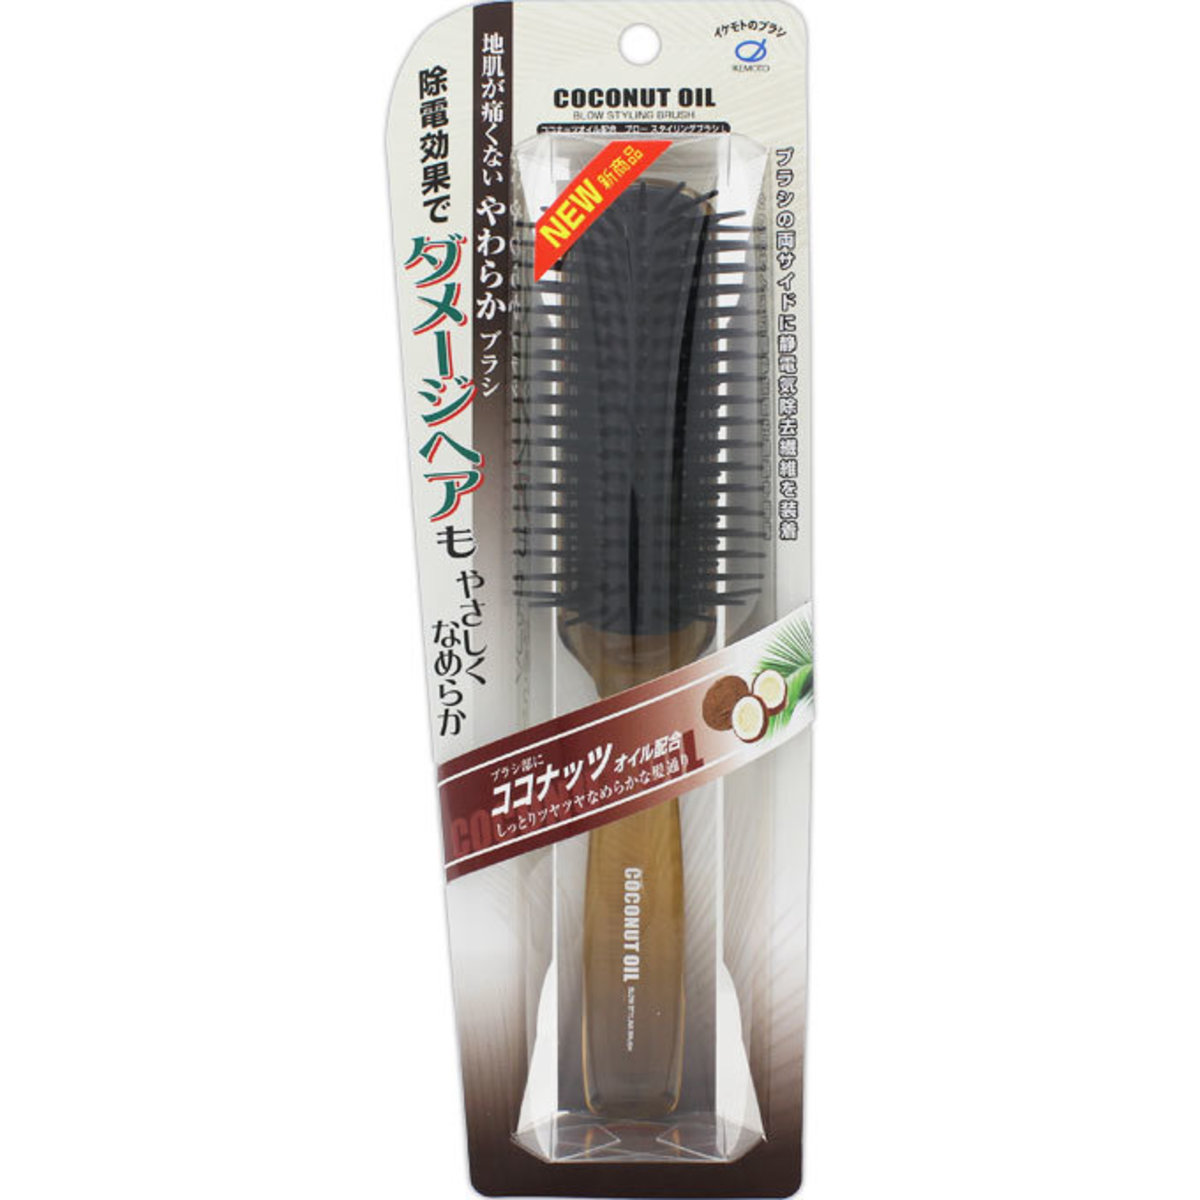 Japan IKEMOTO coconut oil Moisturizing blow styling brush CC-1060